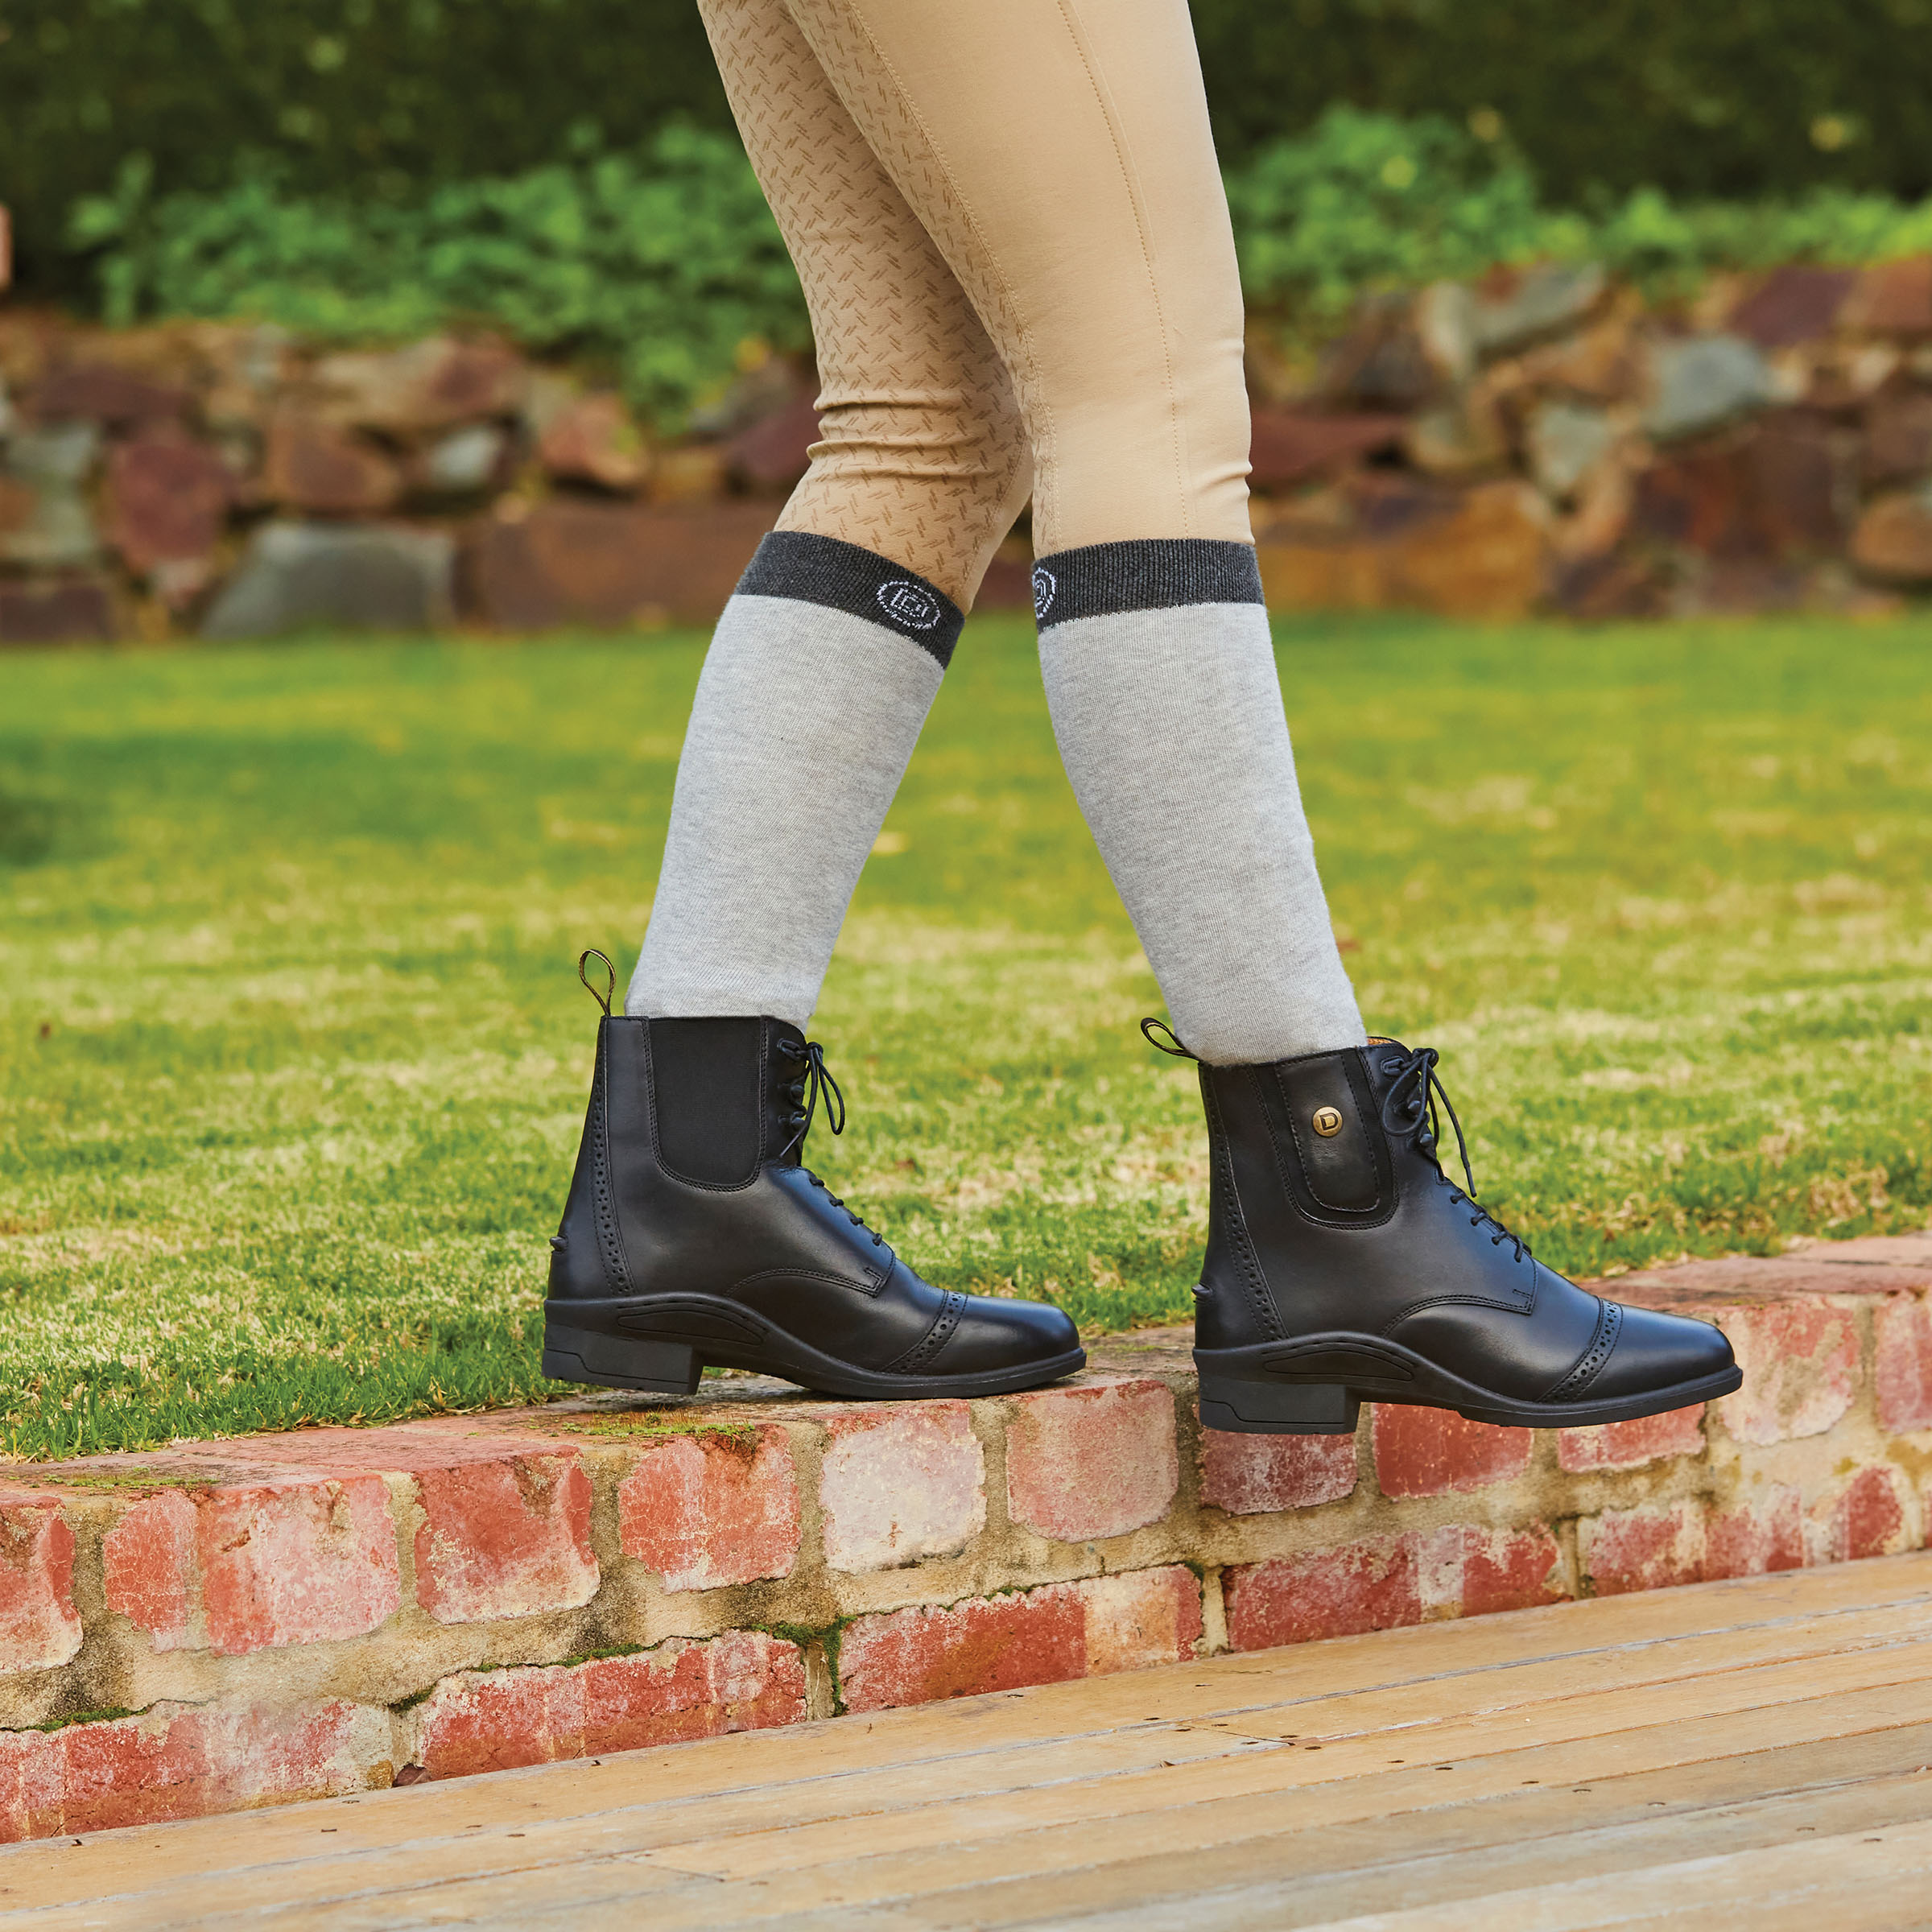 Dublin's New Paddock Boot Collection for Autumn 2020